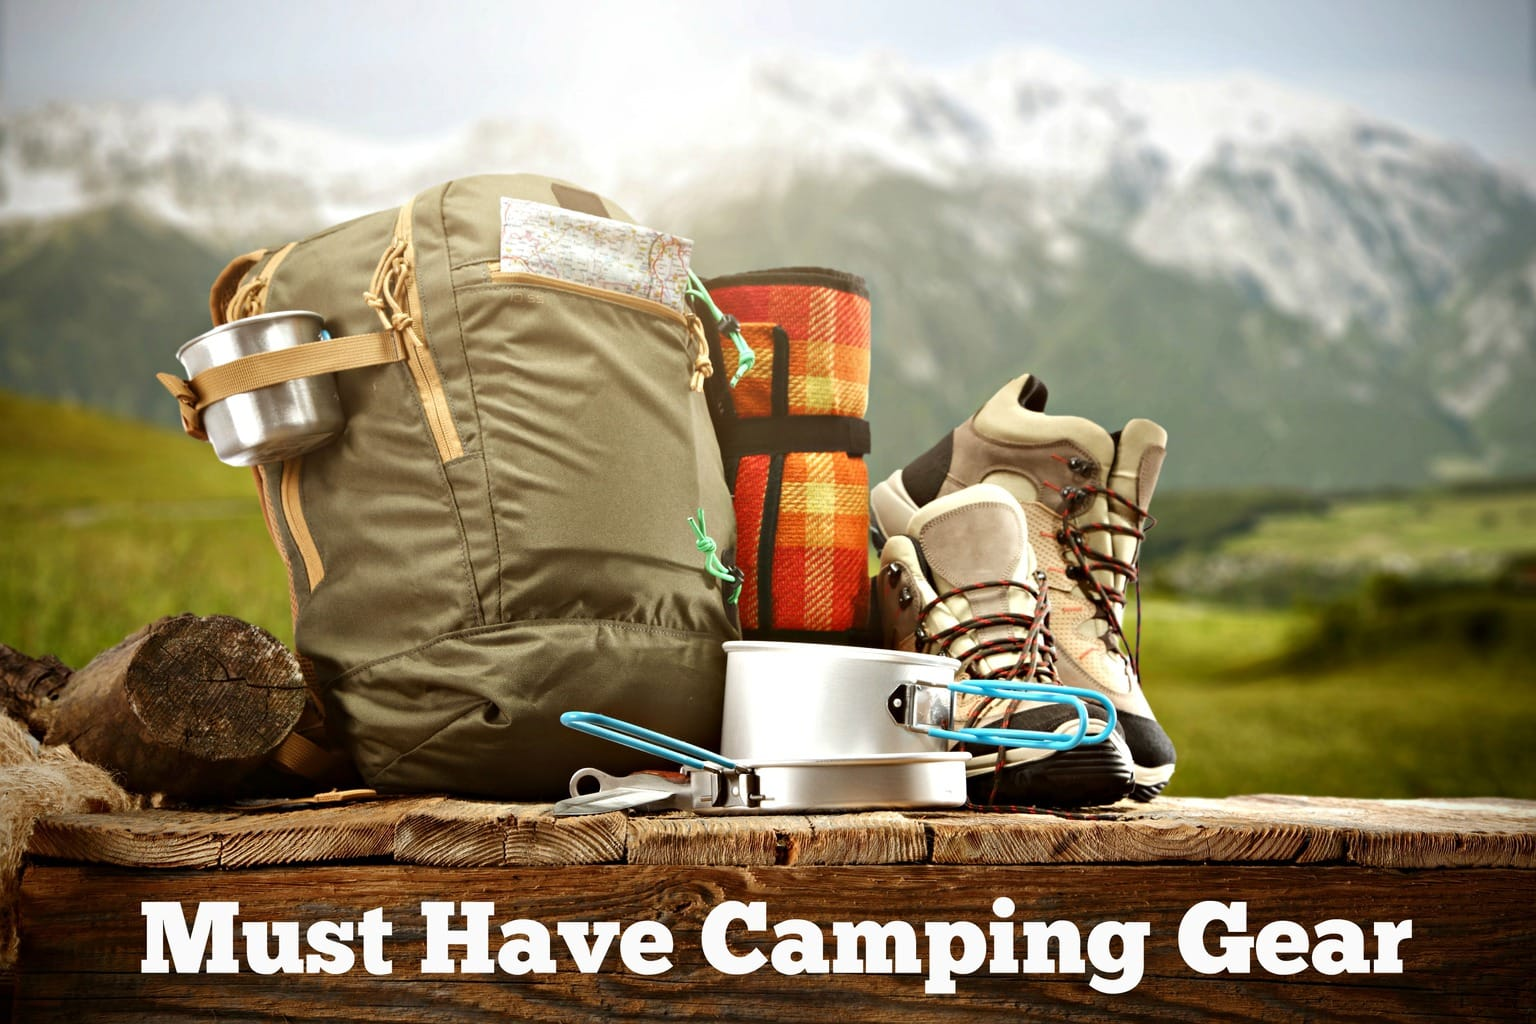 Must Have Camping Gear For Your Next Trip